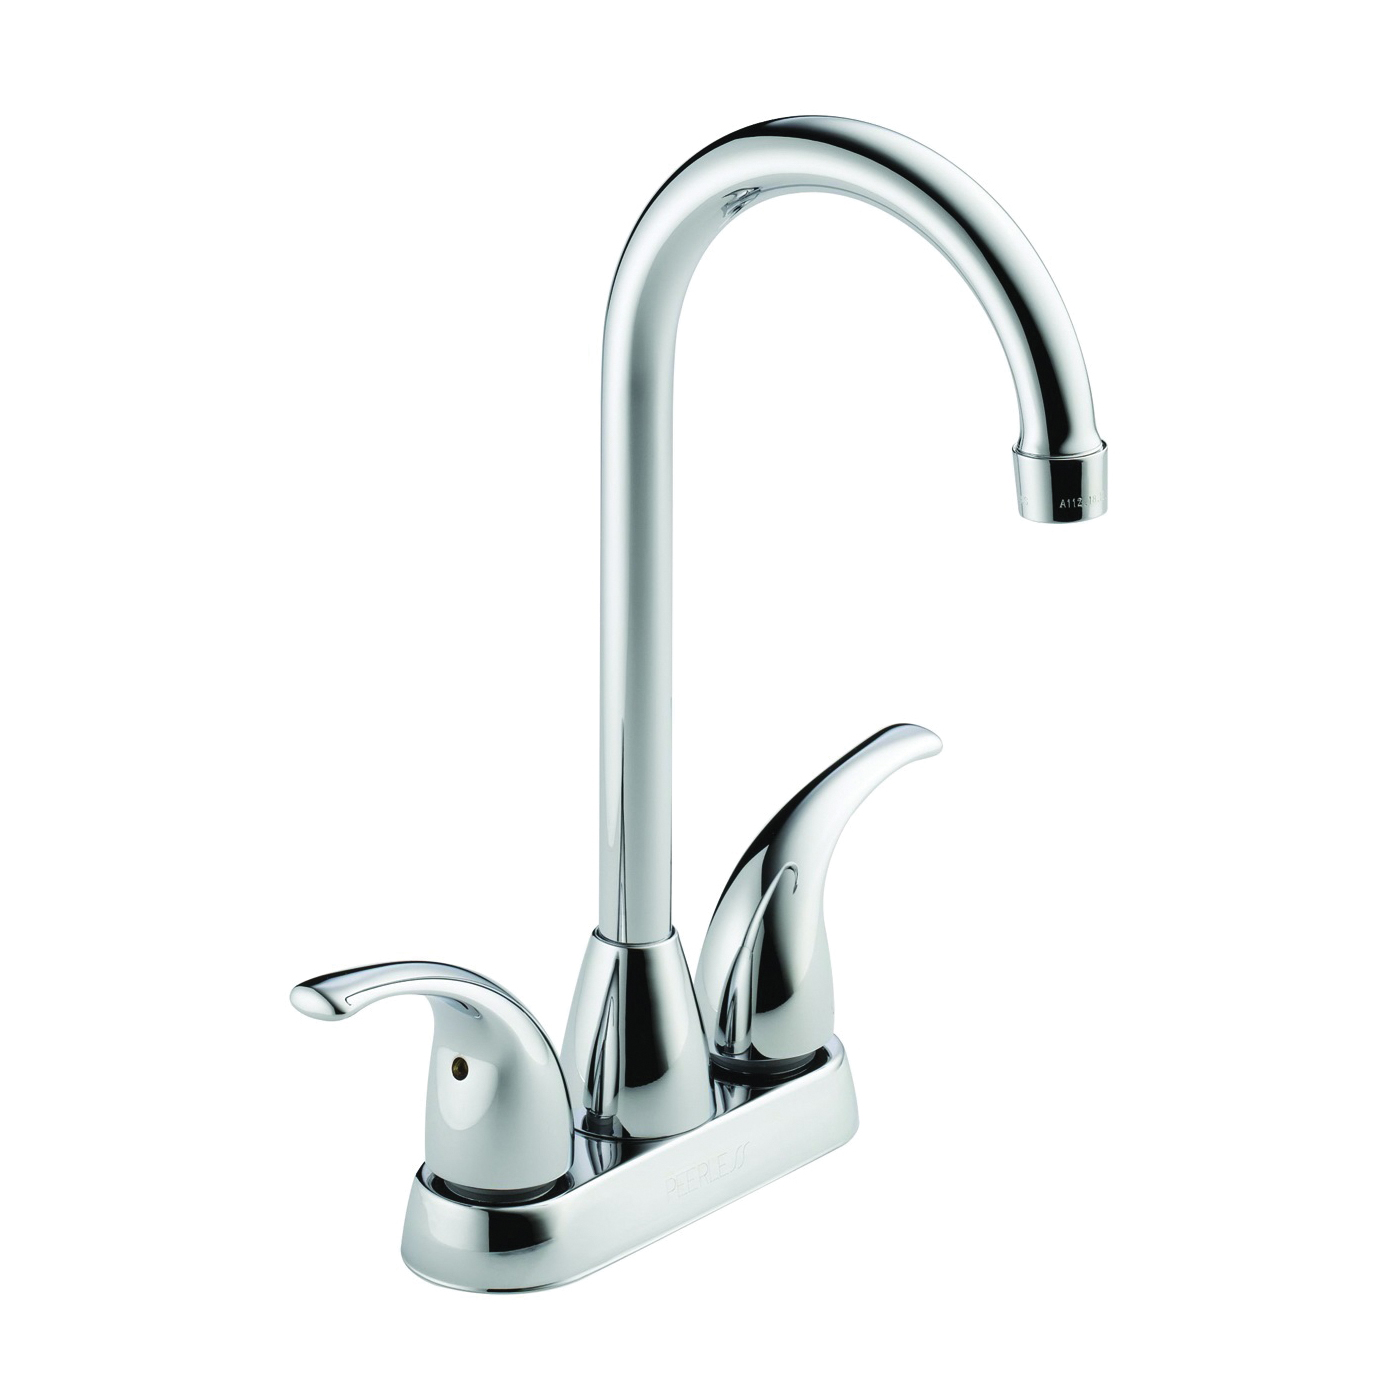 Picture of DELTA Peerless Tunbridge P288LF Bar-Prep Faucet, 1.8 gpm, 2-Faucet Handle, Brass, Chrome, Deck Mounting